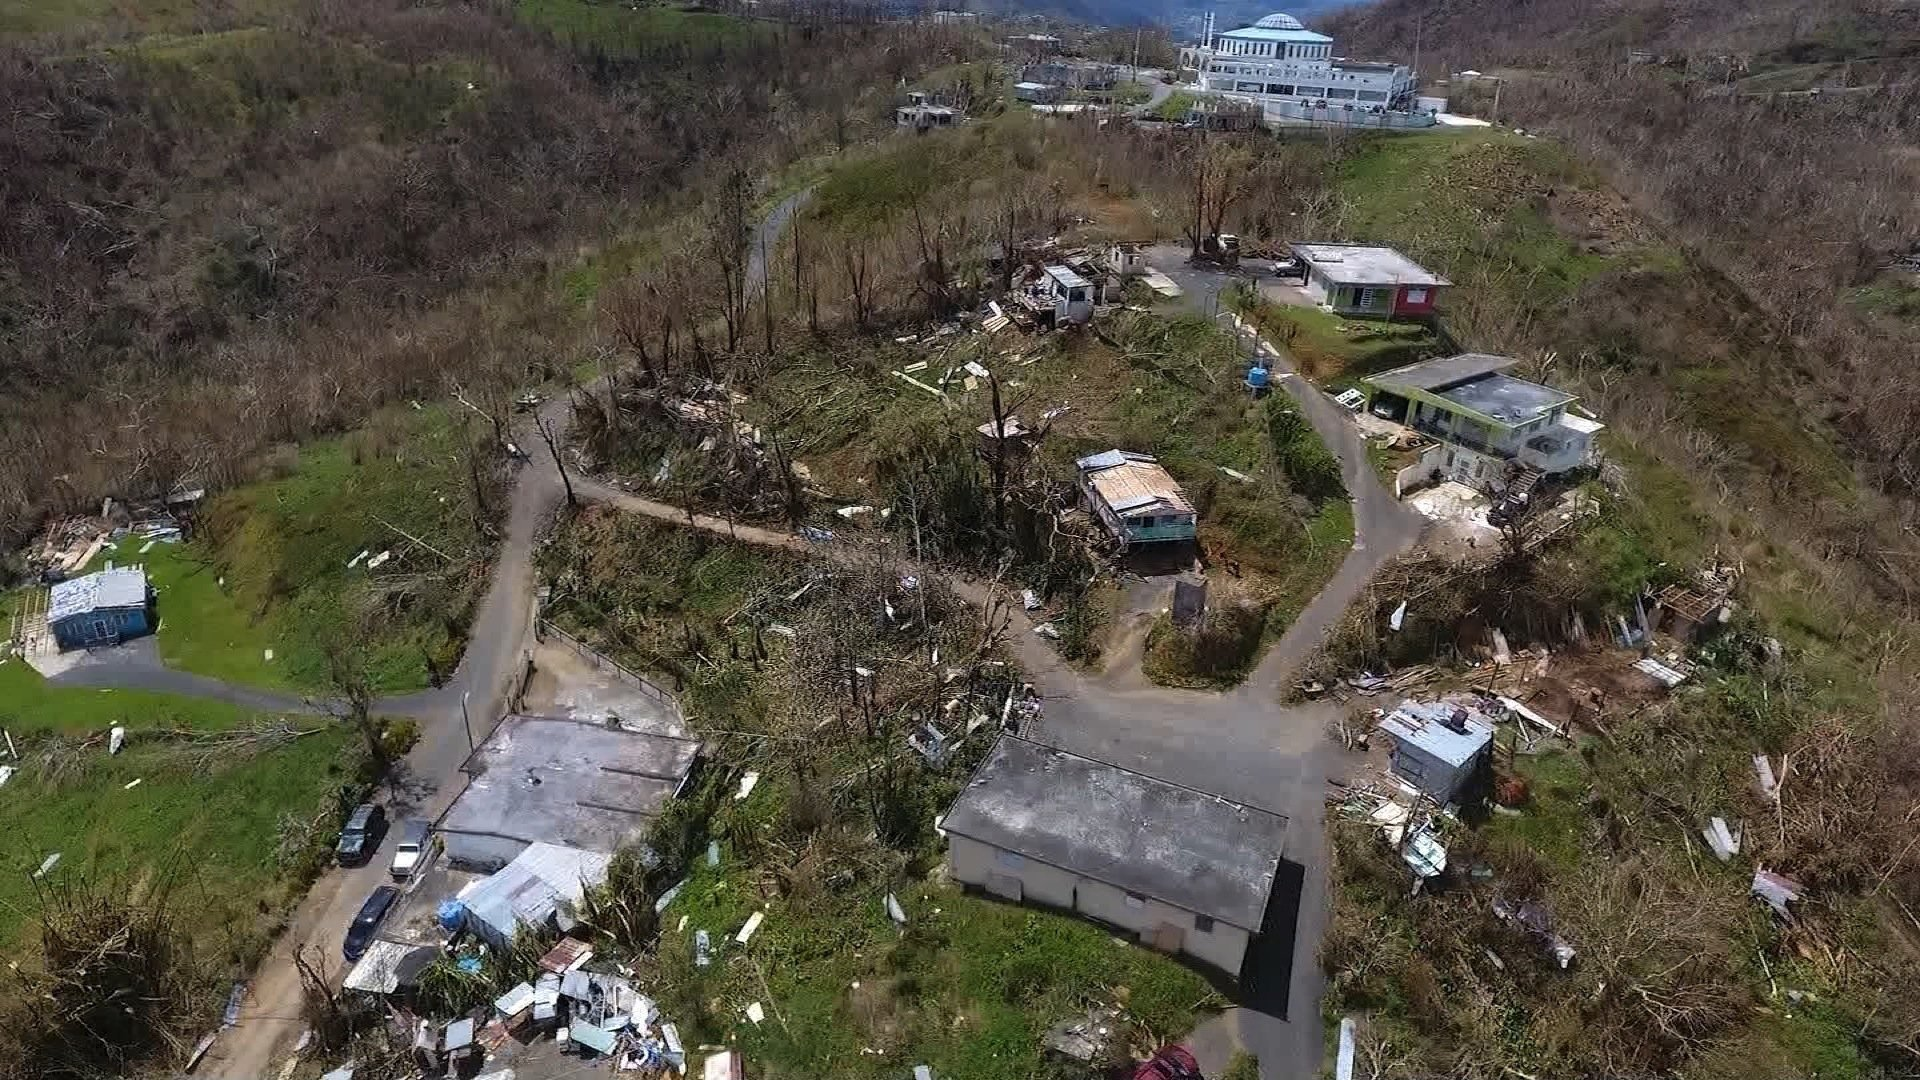 An image showing the devastation Hurricane Maria caused in Puerto Rico. courtesy of CNN.